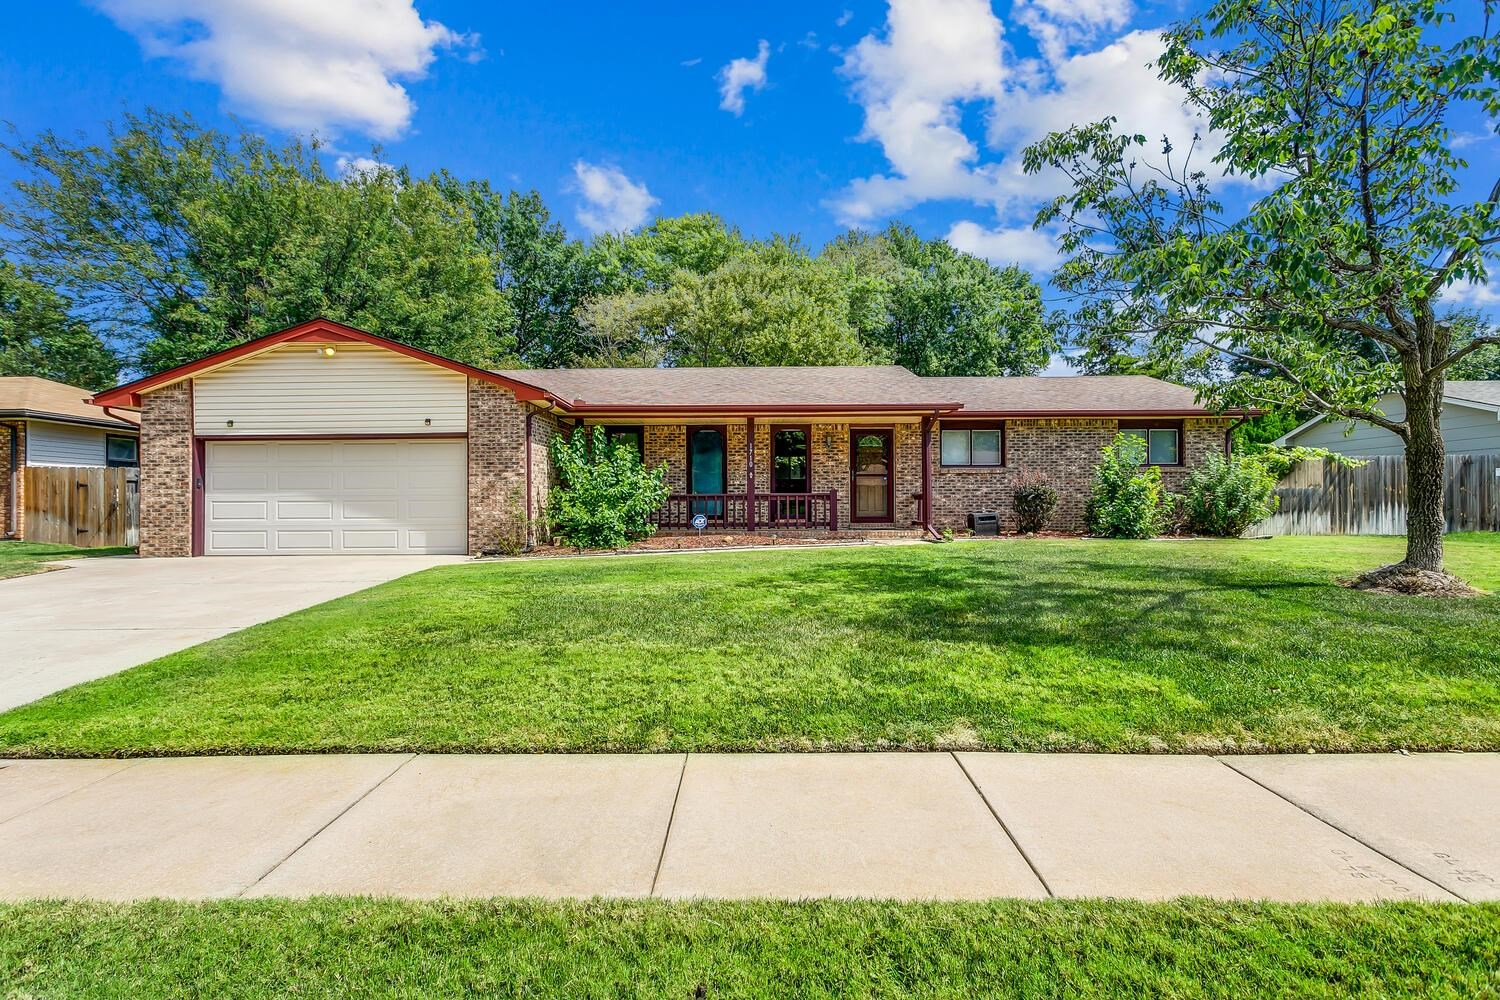 SPACIOUS RANCH IN ESTABLISHED WEST SIDE NEIGHBORHOOD. KITCHEN HAS AN ABUNDANCE OF CABINETRY AND IS O